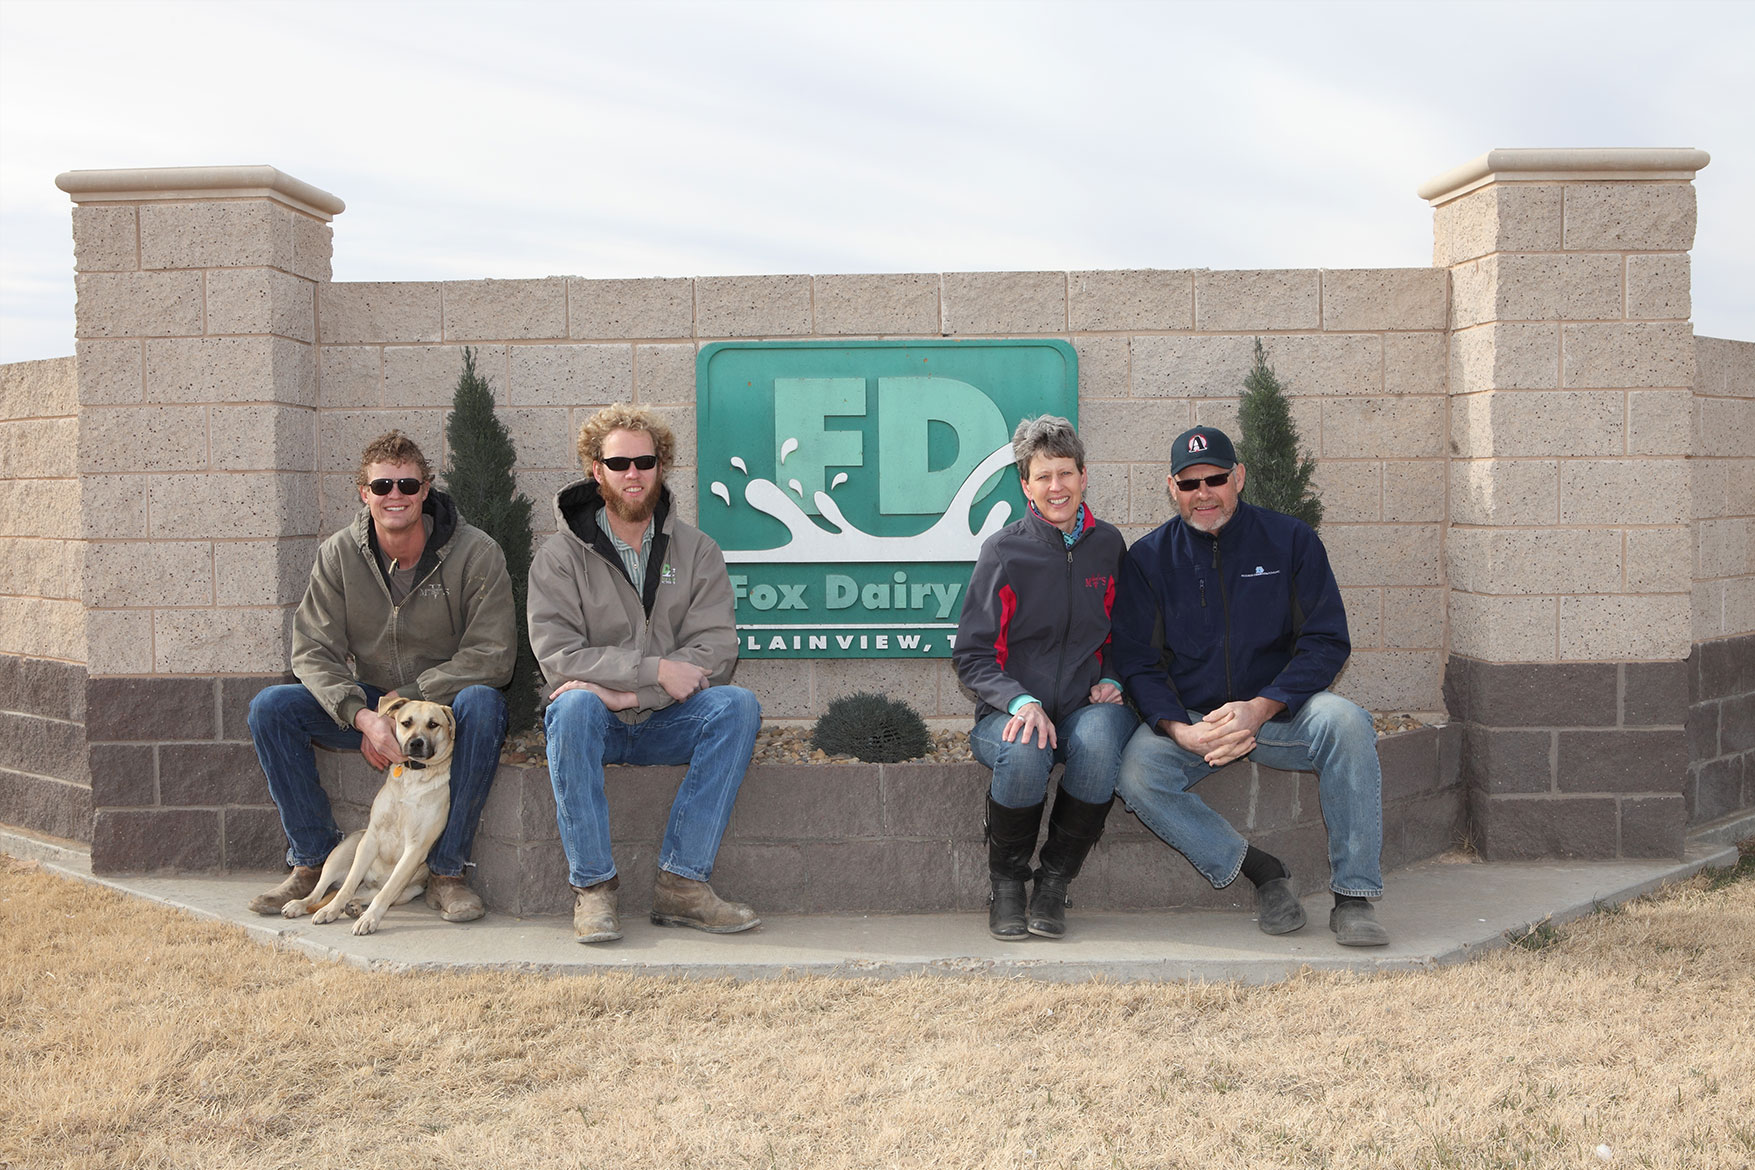 The DeVos family poses in front of the sign for their dairy farm.